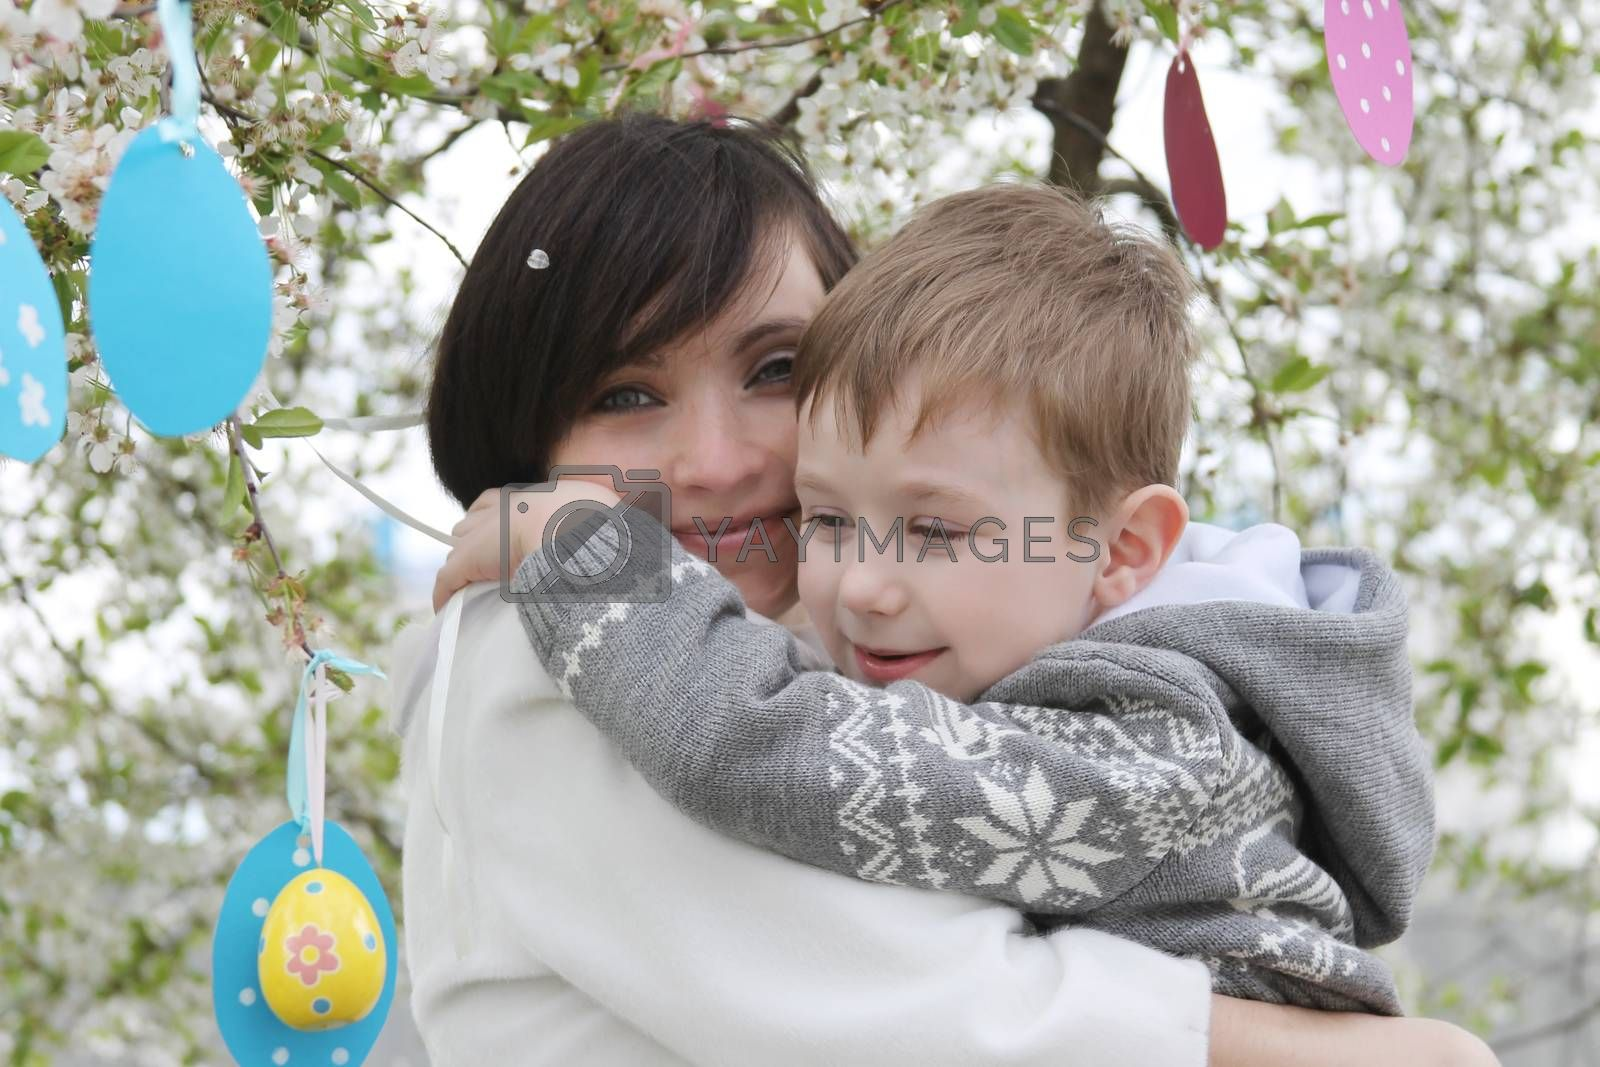 Happy mother and son in blooming garden decorating for Easter